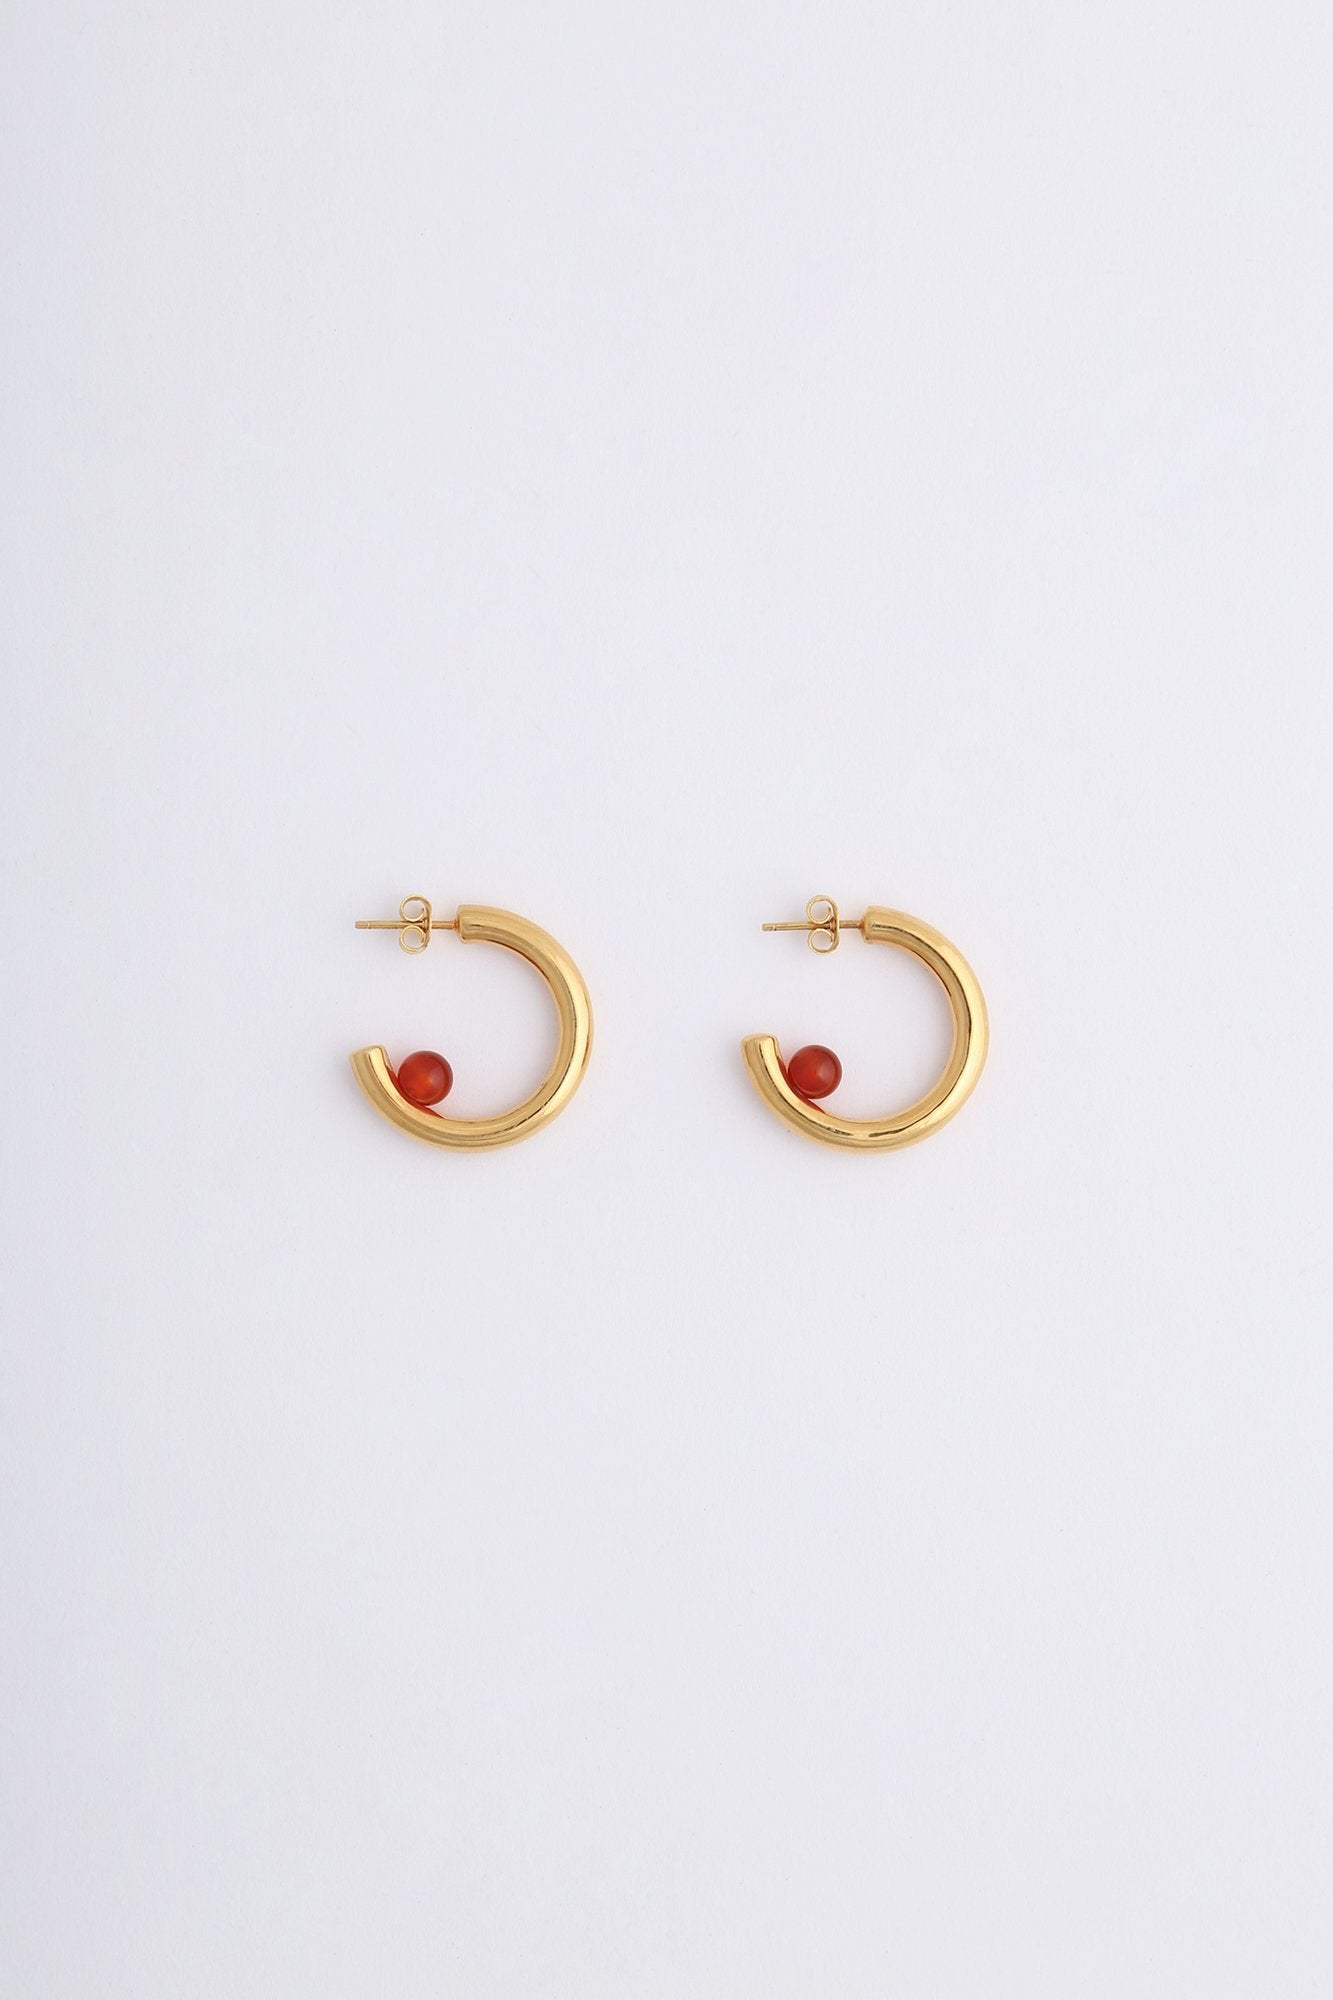 Luna Earrings Gold Orange Onyx